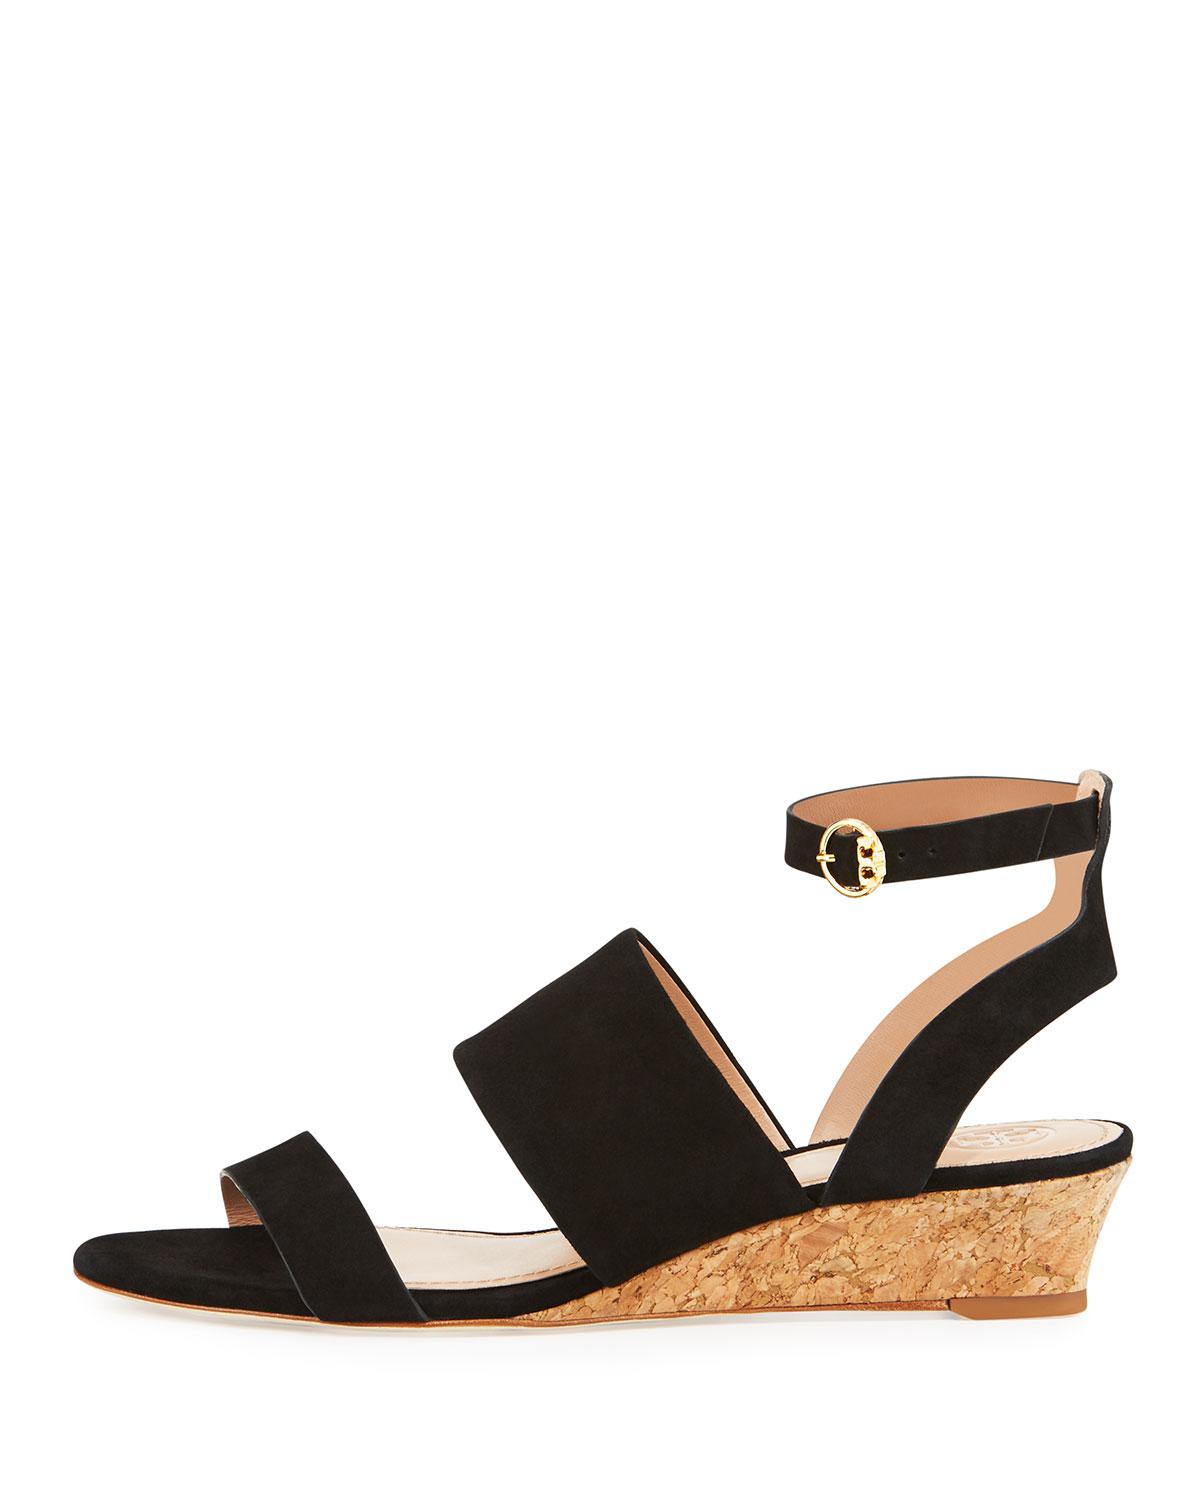 c7972052341 Lyst - Tory Burch North Suede Low-wedge Sandal in Black